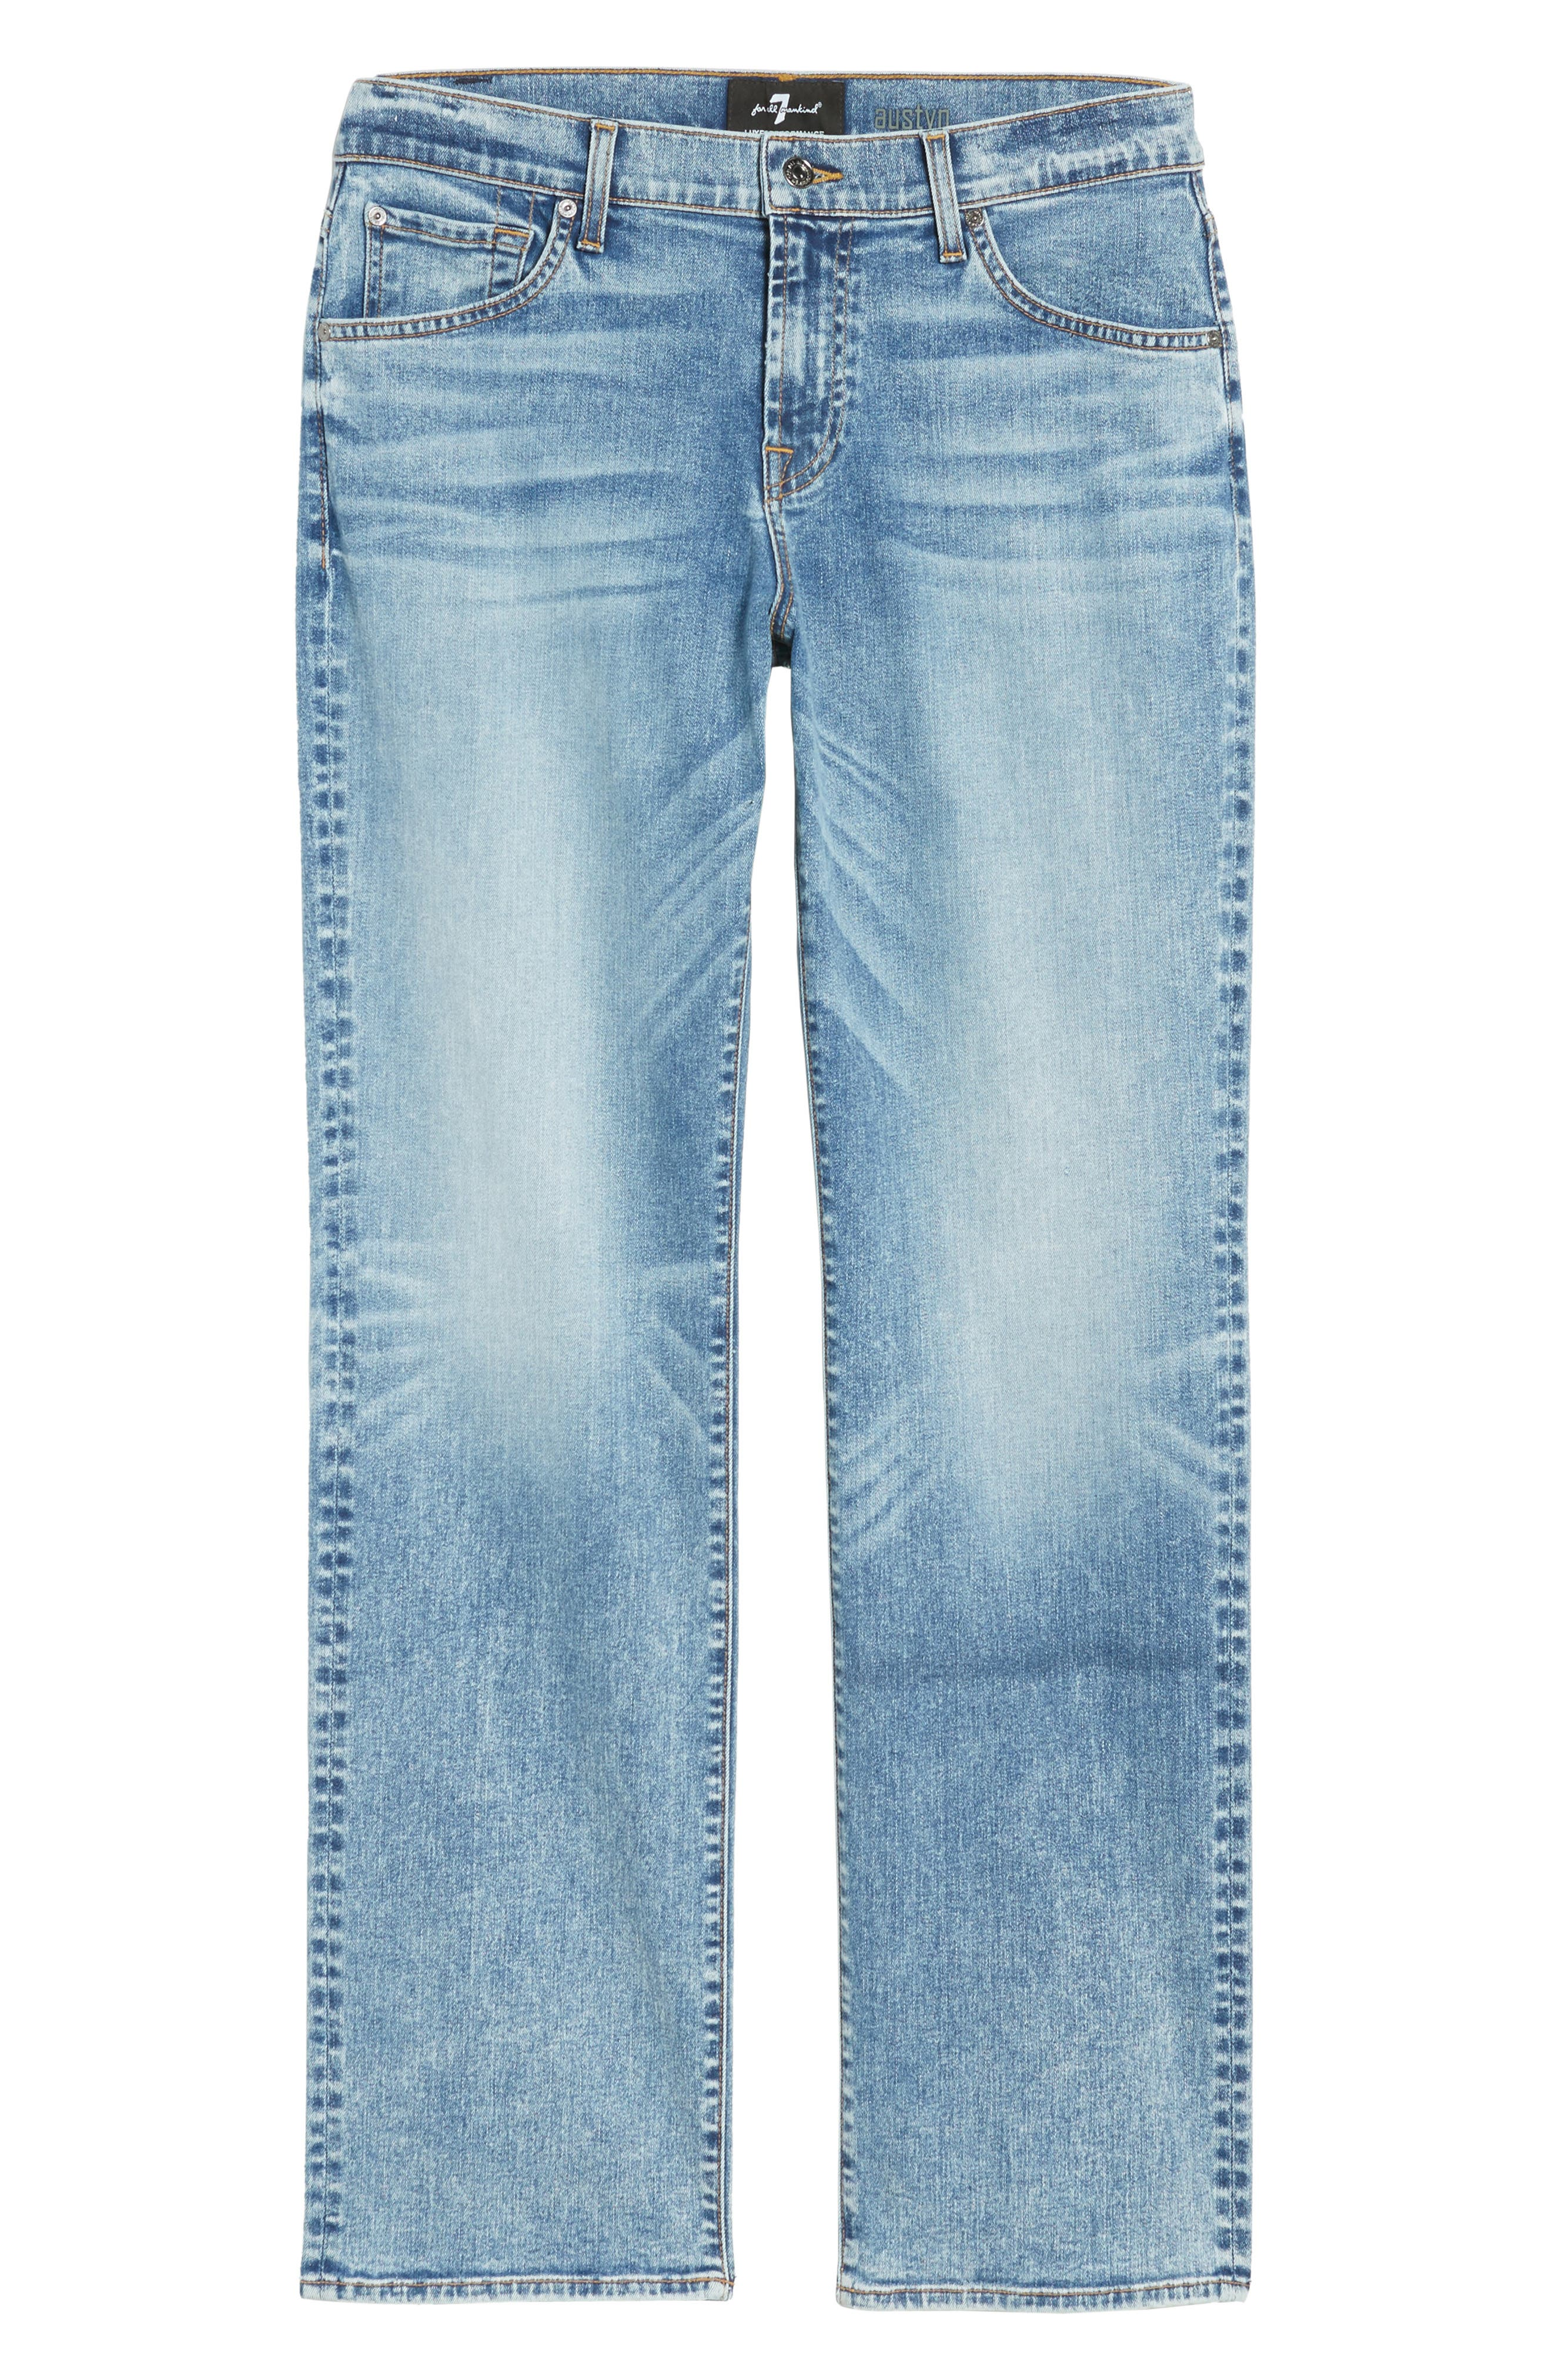 Austyn - Luxe Performance Relaxed Fit Jeans,                             Alternate thumbnail 6, color,                             Death Valley